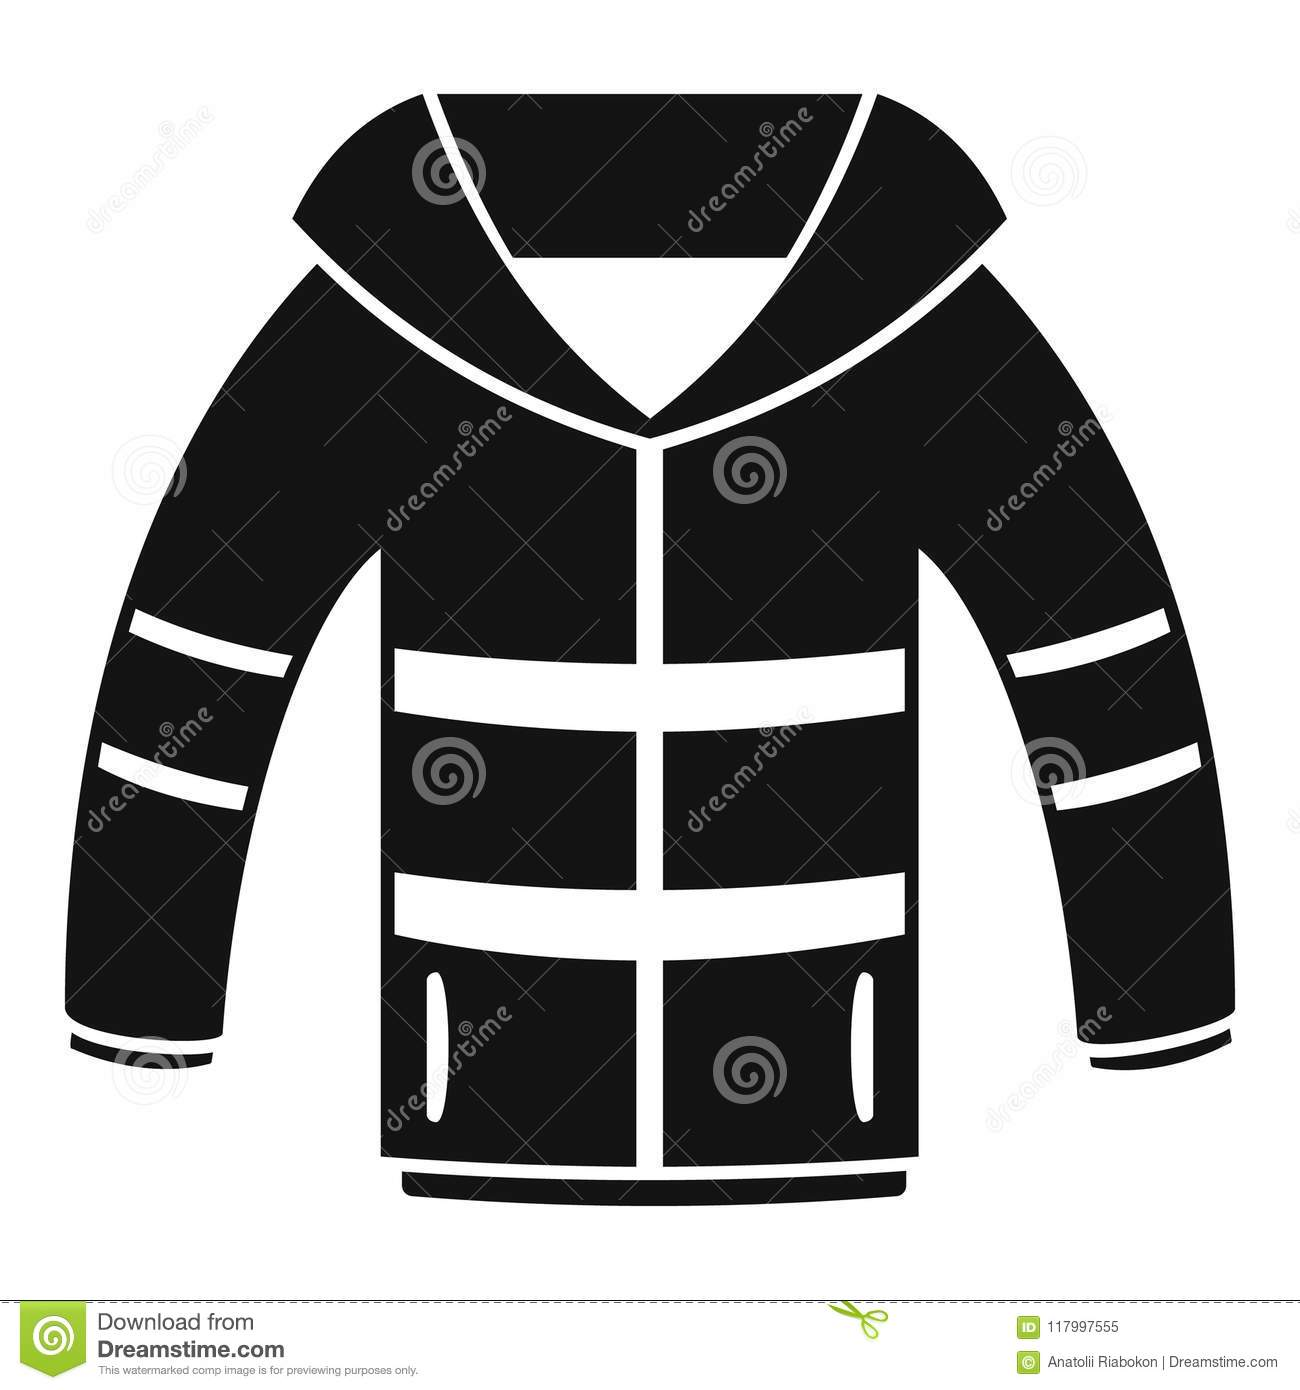 085f54498fc5 Winter jacket icon. Simple illustration of winter jacket vector icon for  web design isolated on white background. More similar stock illustrations